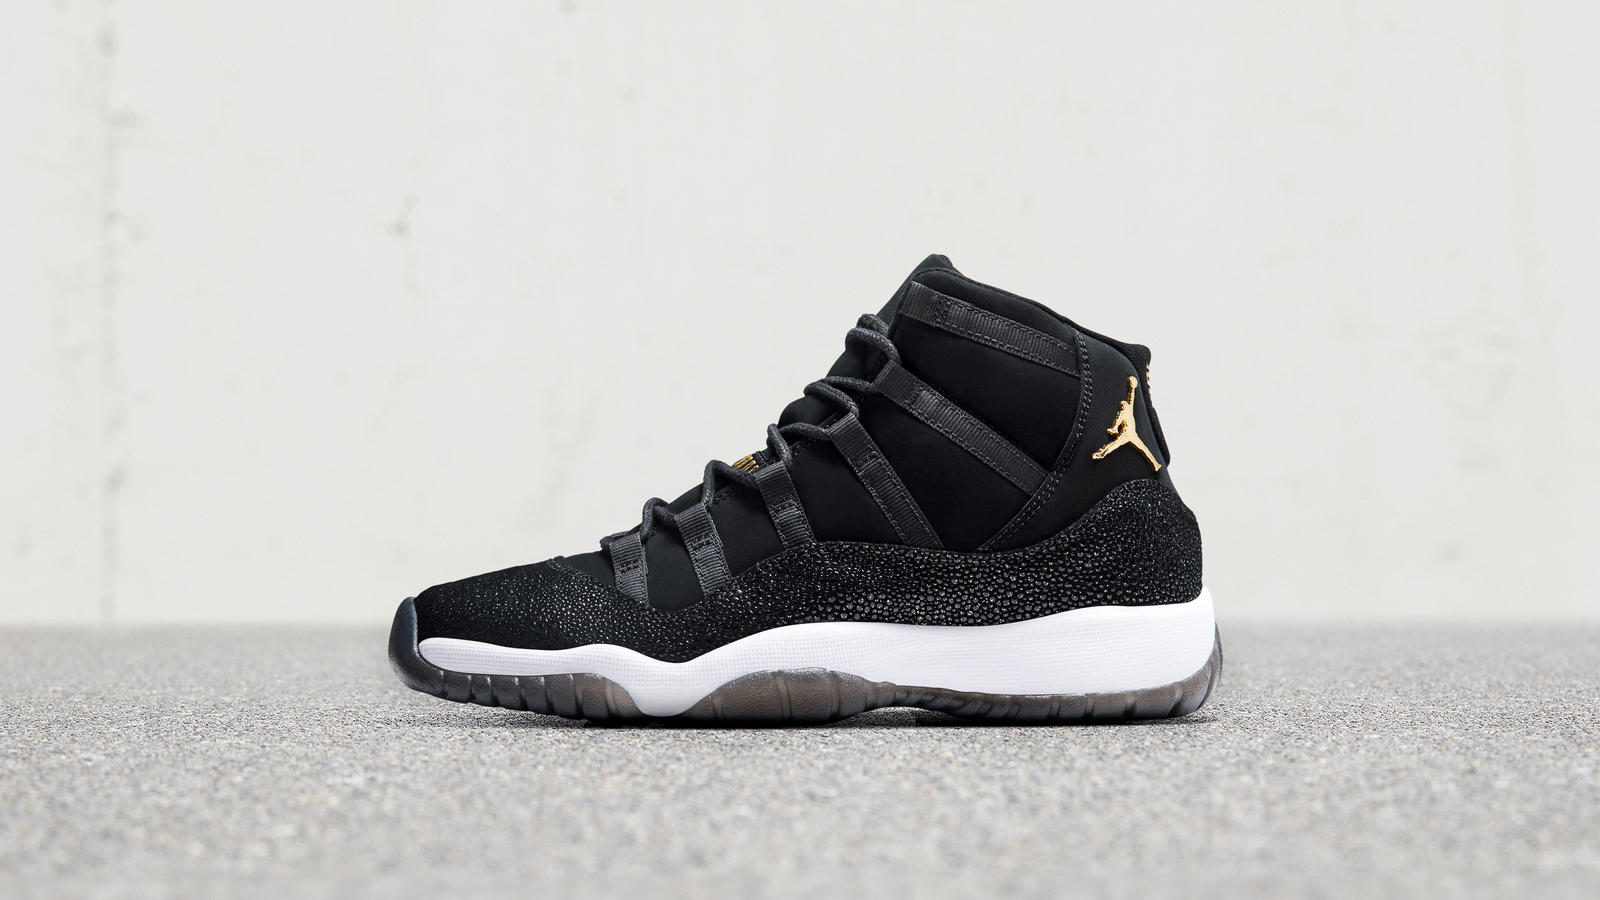 Air jordan xi heiress hd 1600